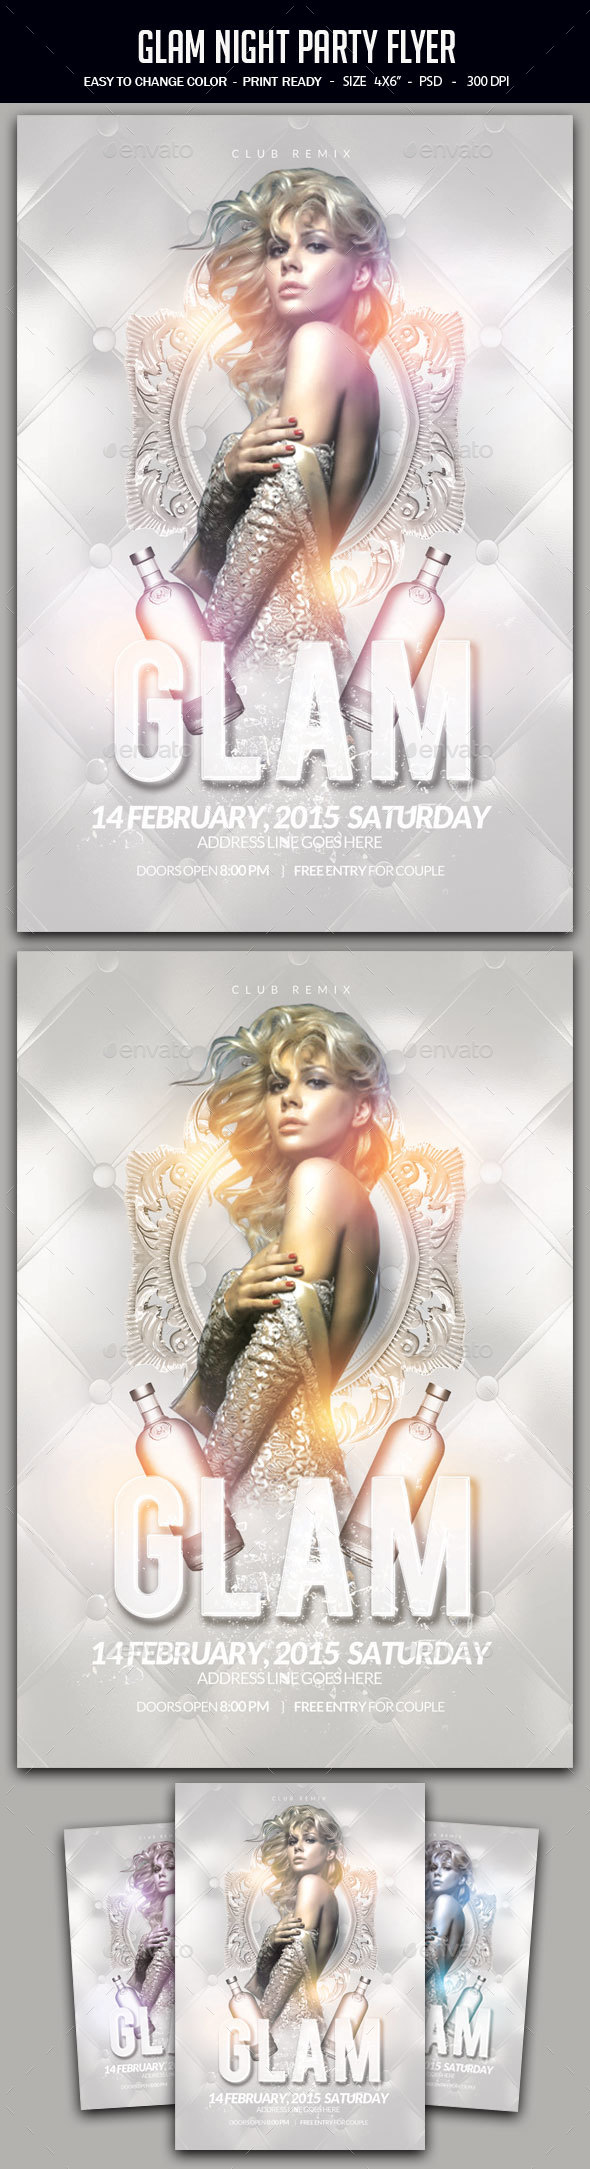 Glam Night Party Flyer - Clubs & Parties Events